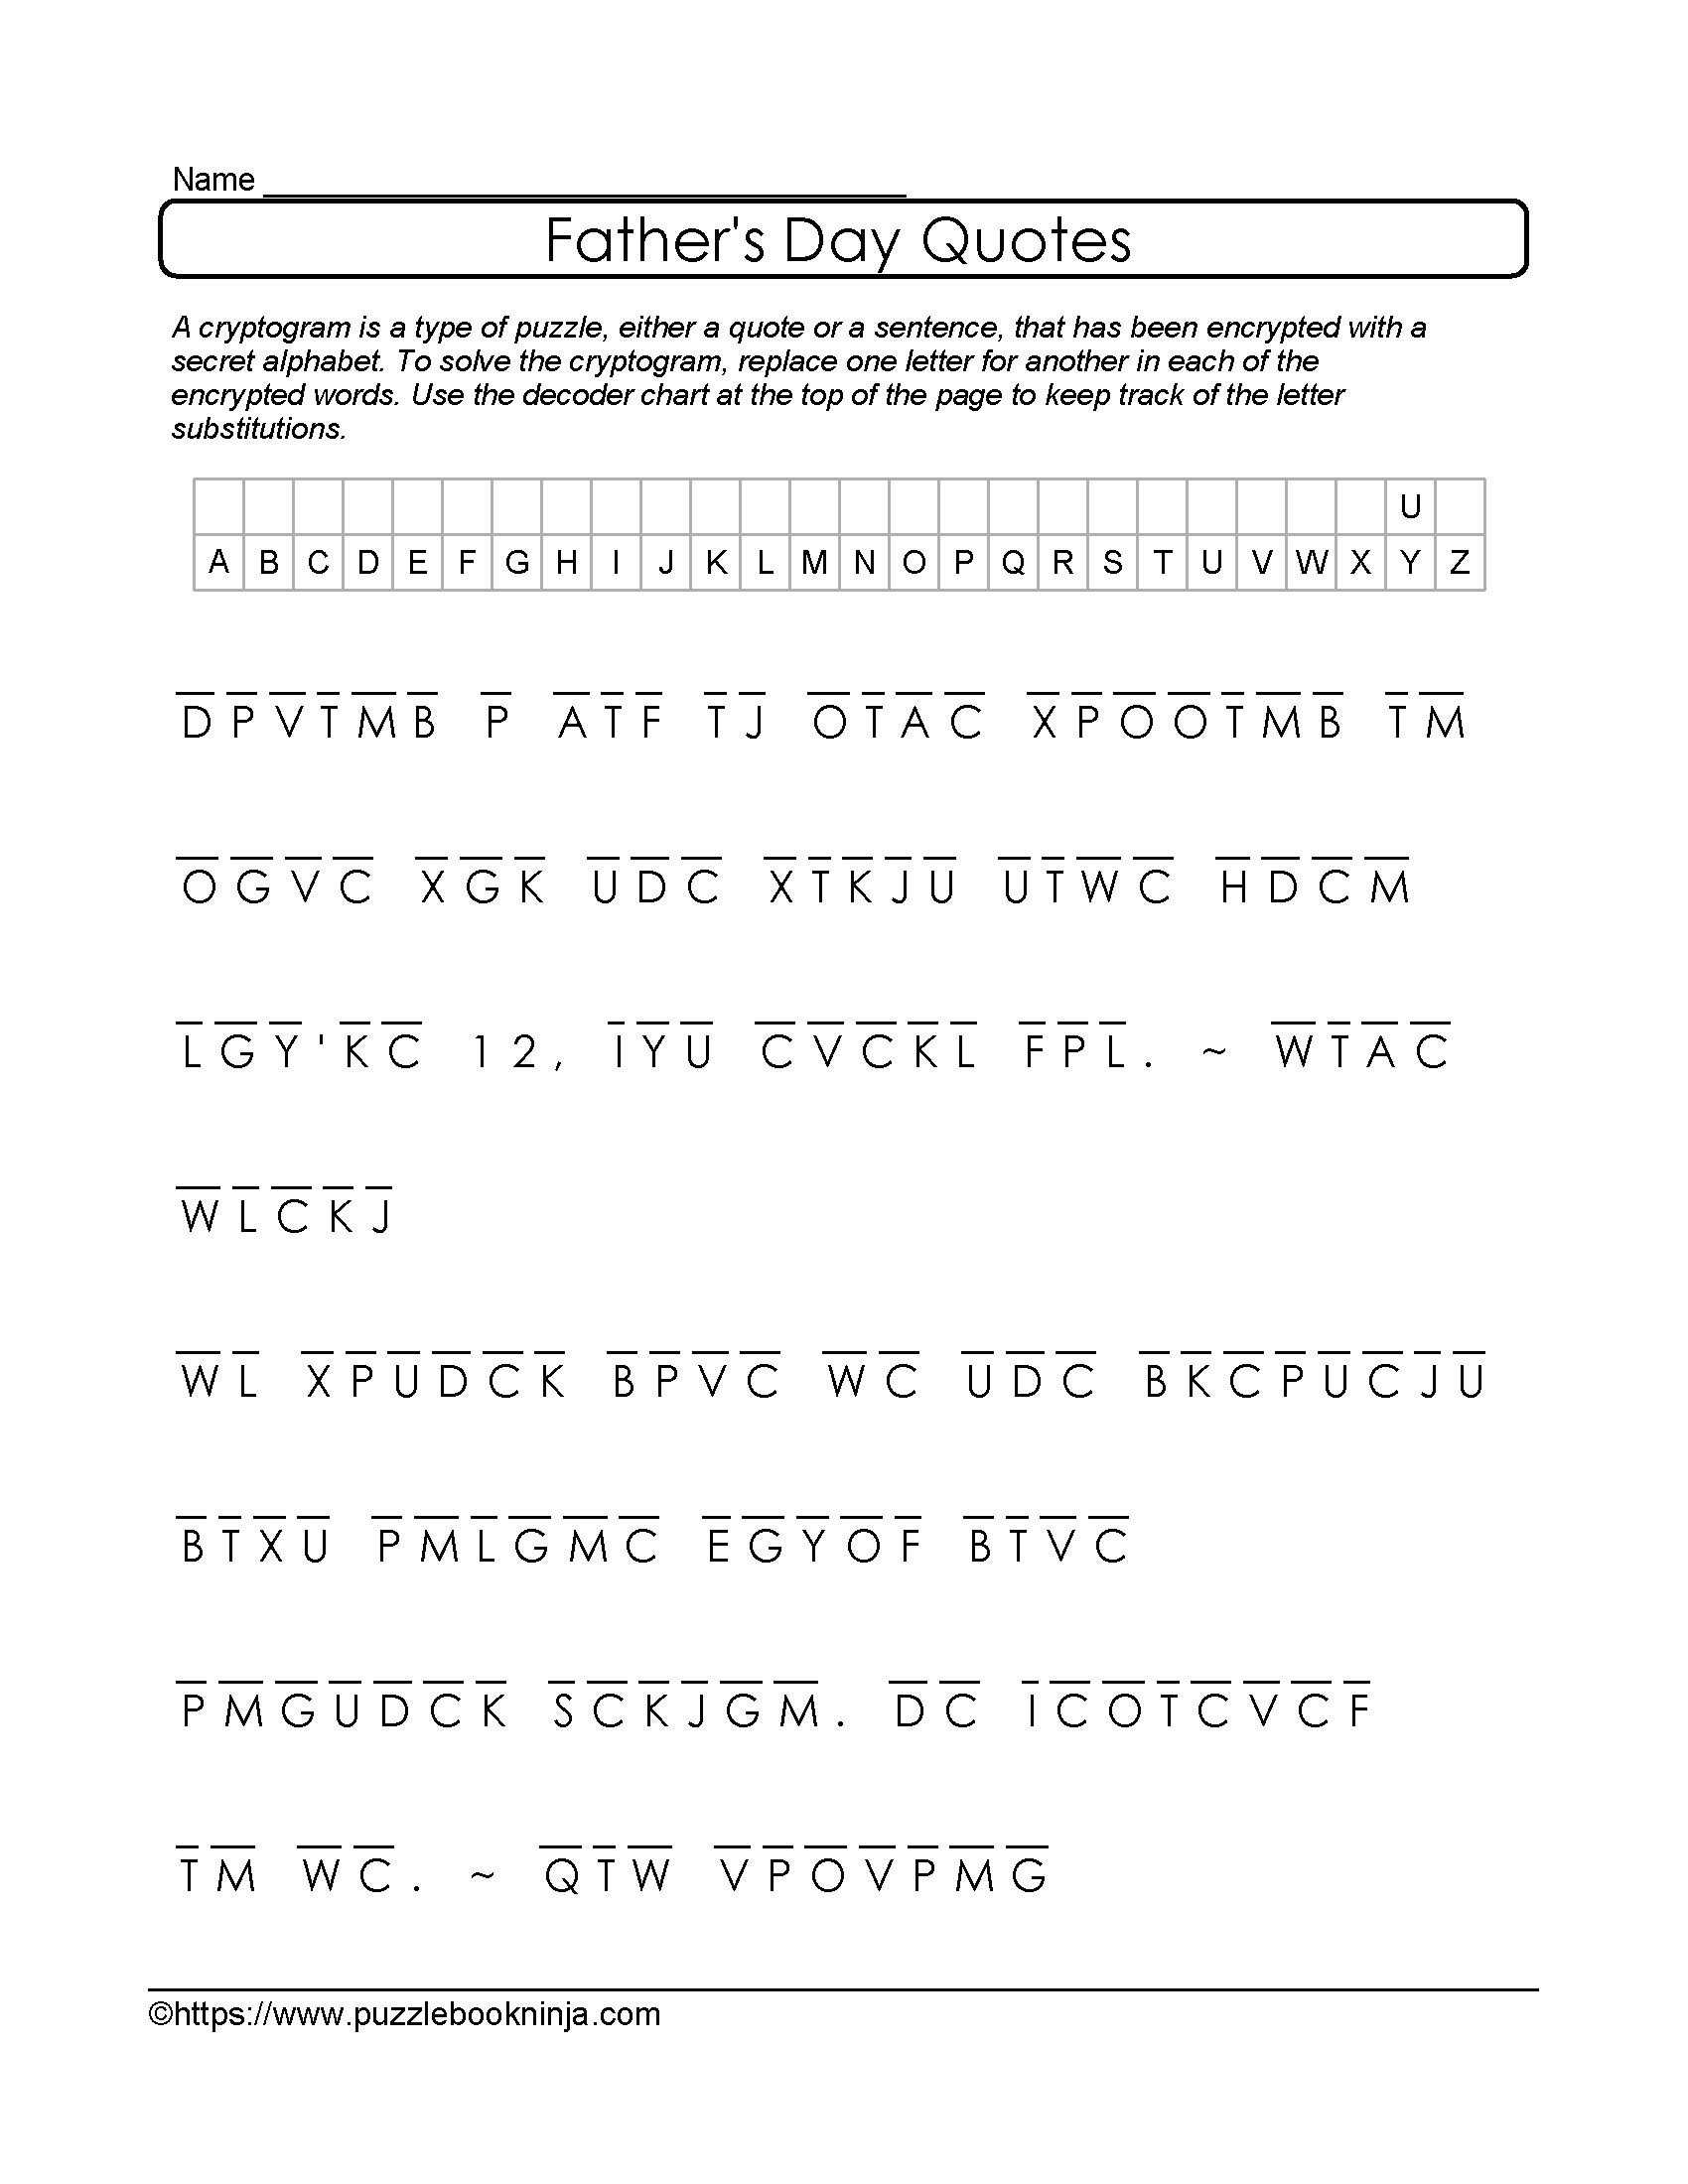 Free And Printable Father's Day Cryptogram. Quotes About Dad - Free - Printable Quiptoquip Puzzles